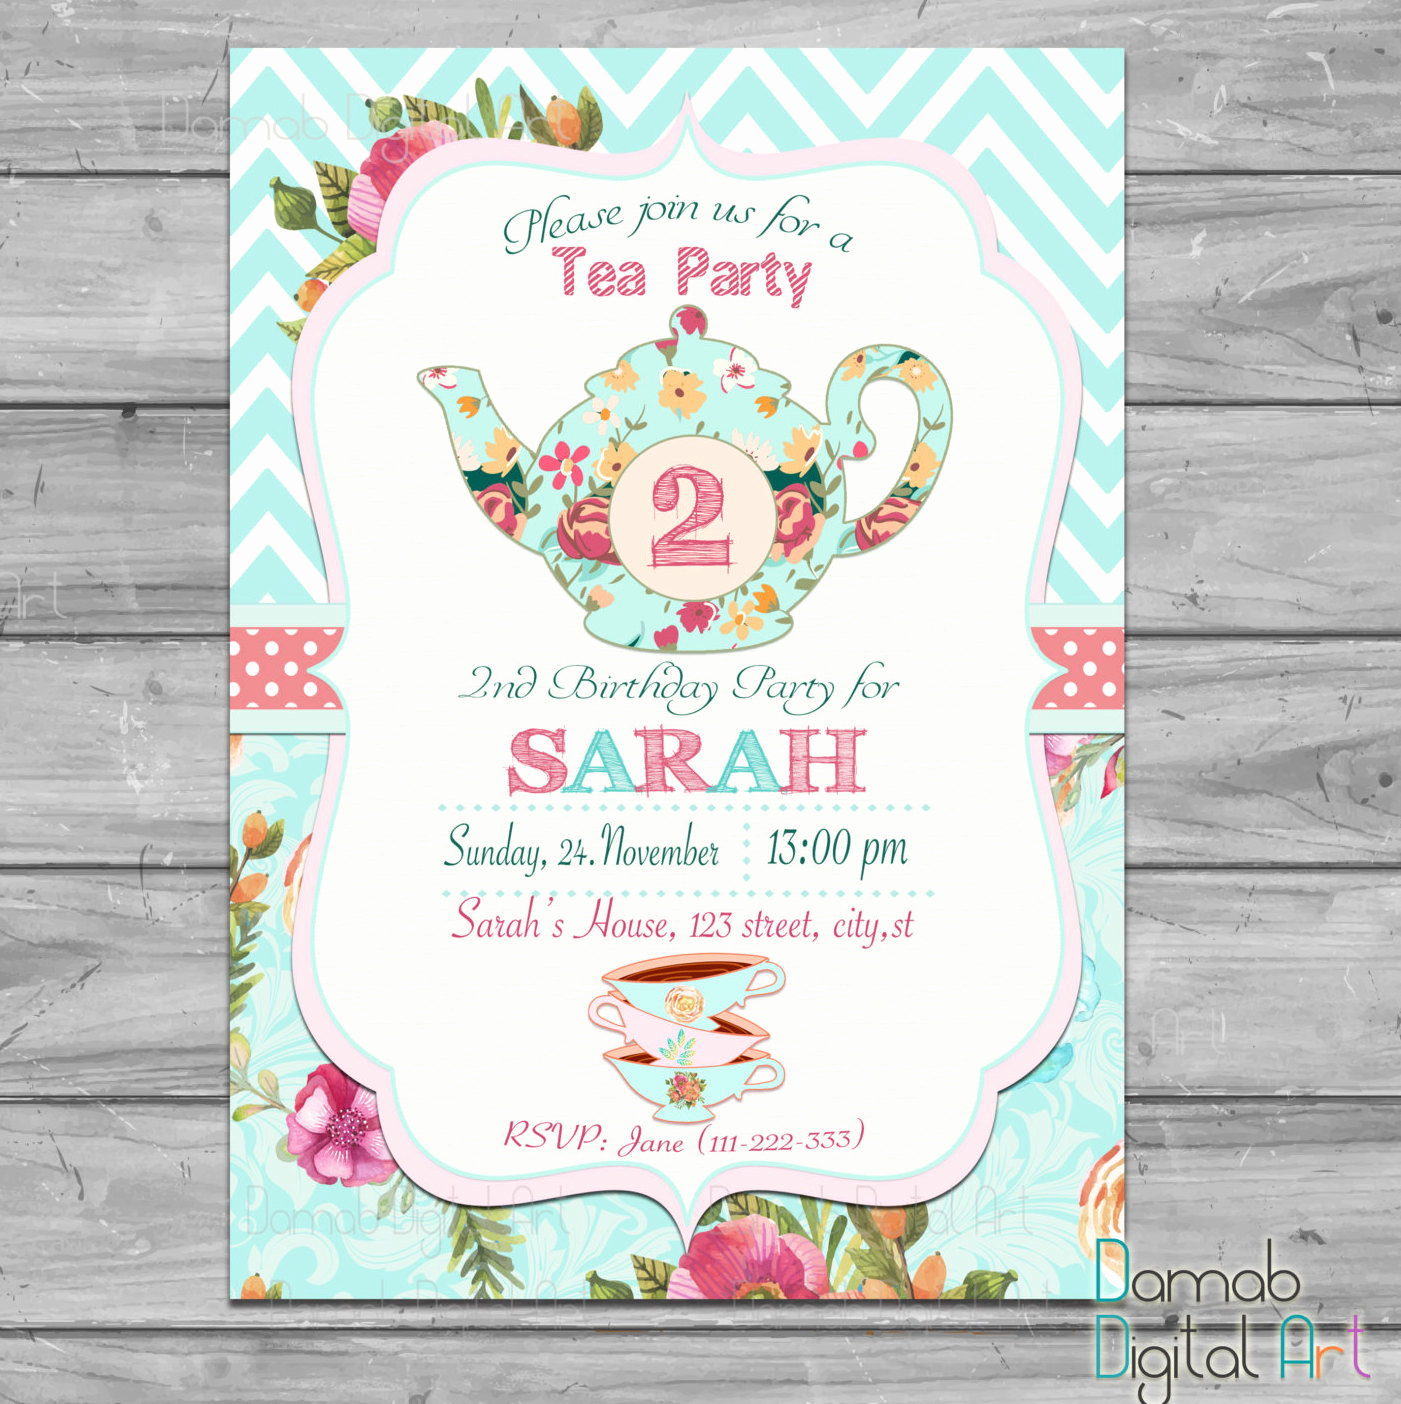 Invitation for Tea Party Awesome Tea Party Invitation Tea for Two Invitation Tea for 2